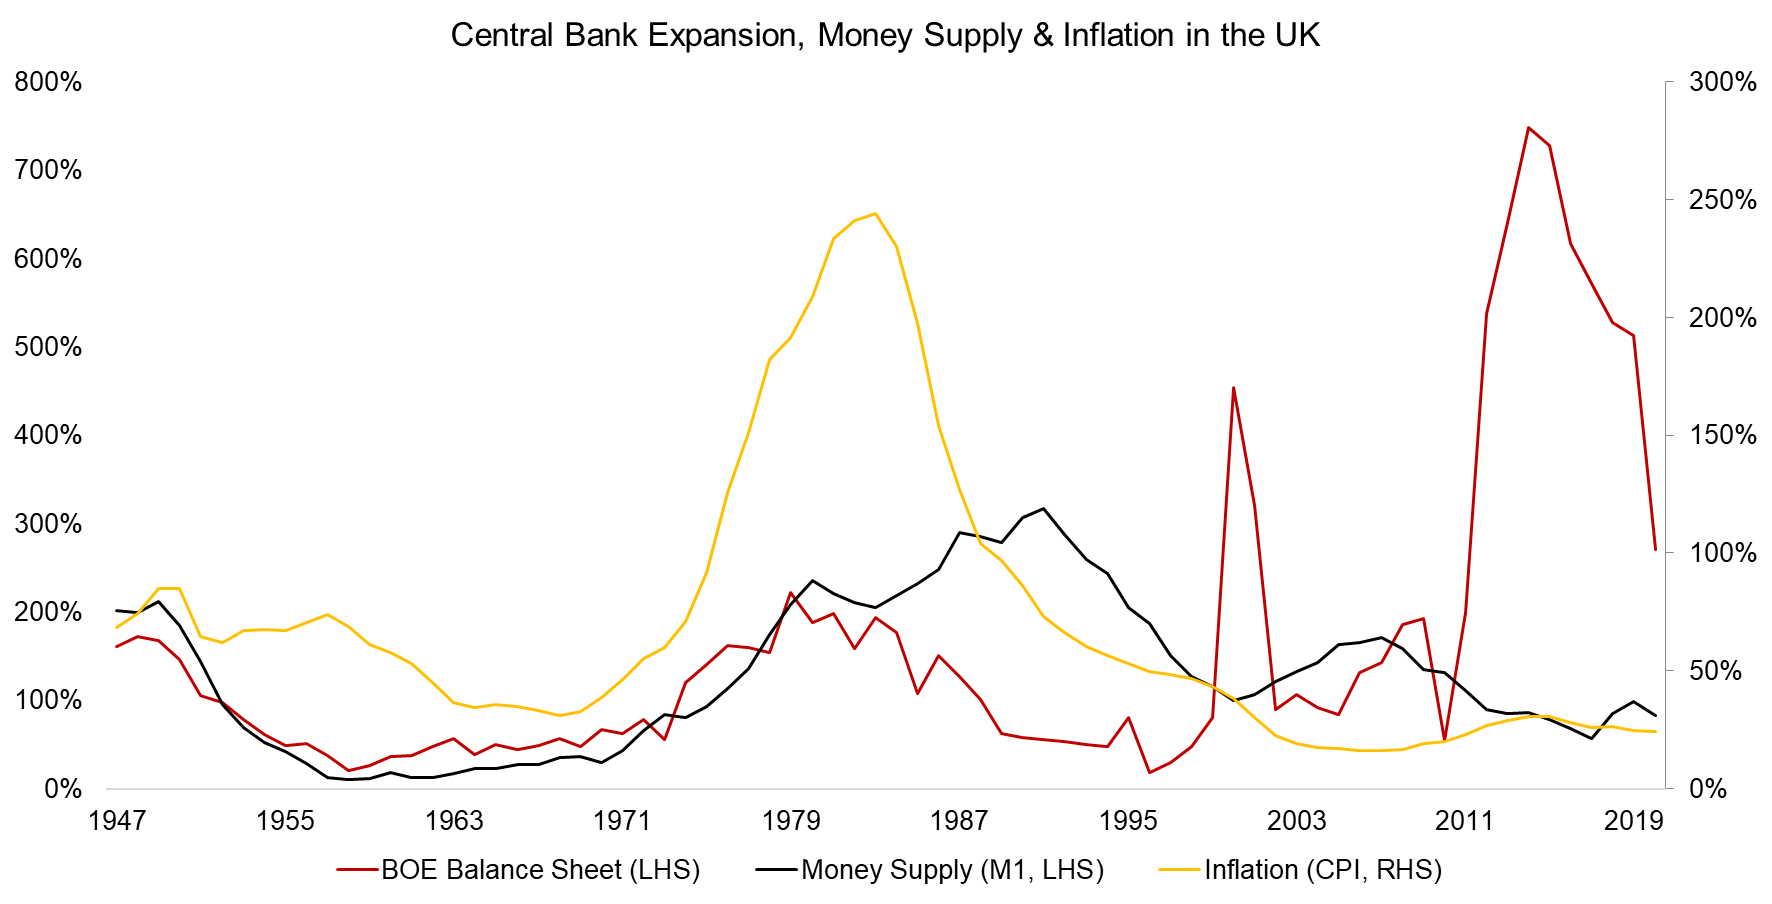 Central Bank Expansion, Money Supply & Inflation in the UK